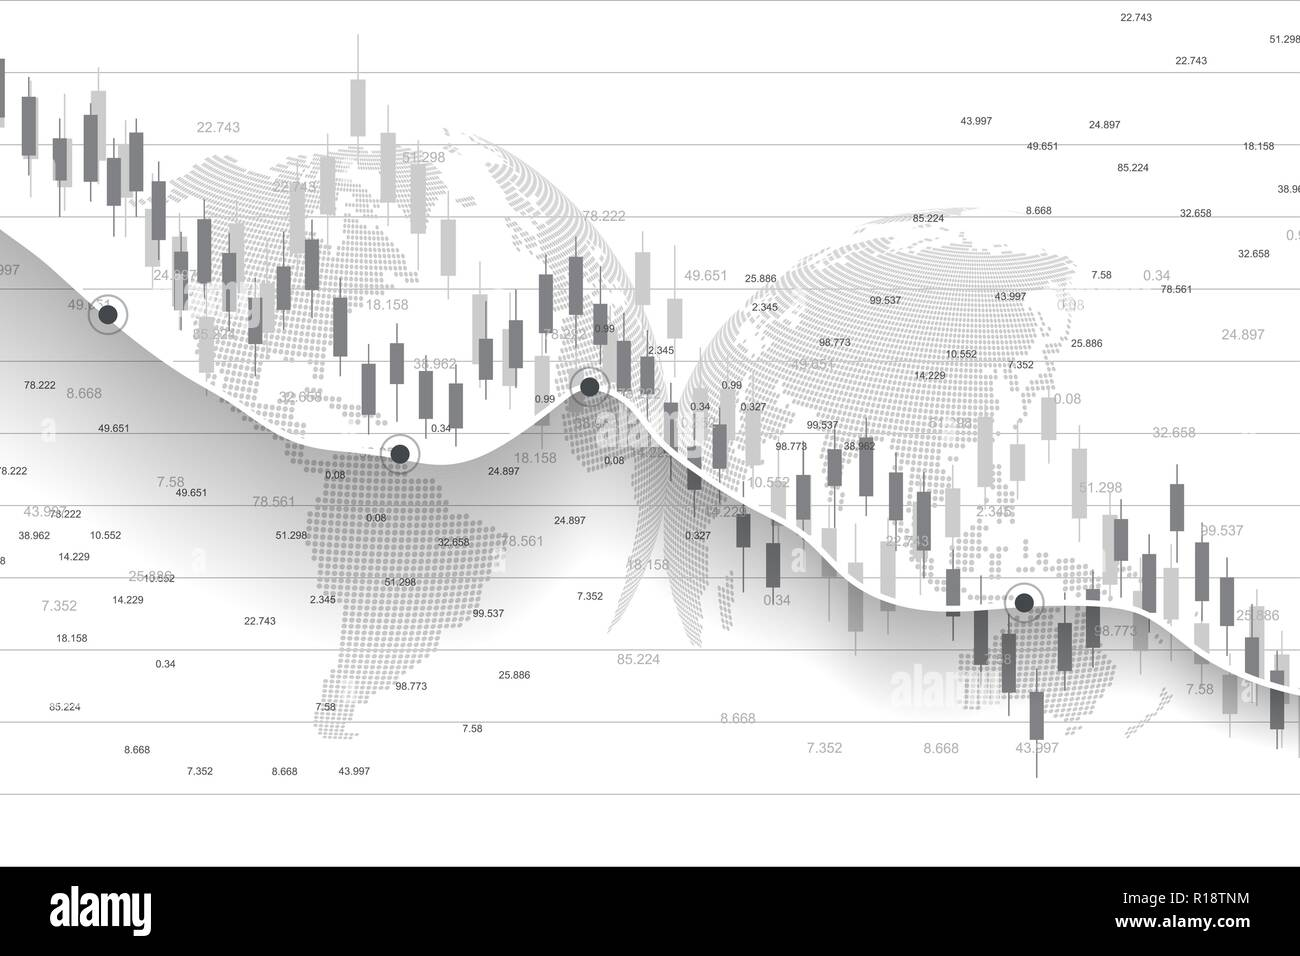 Stock market and exchange  Business Candle stick graph chart